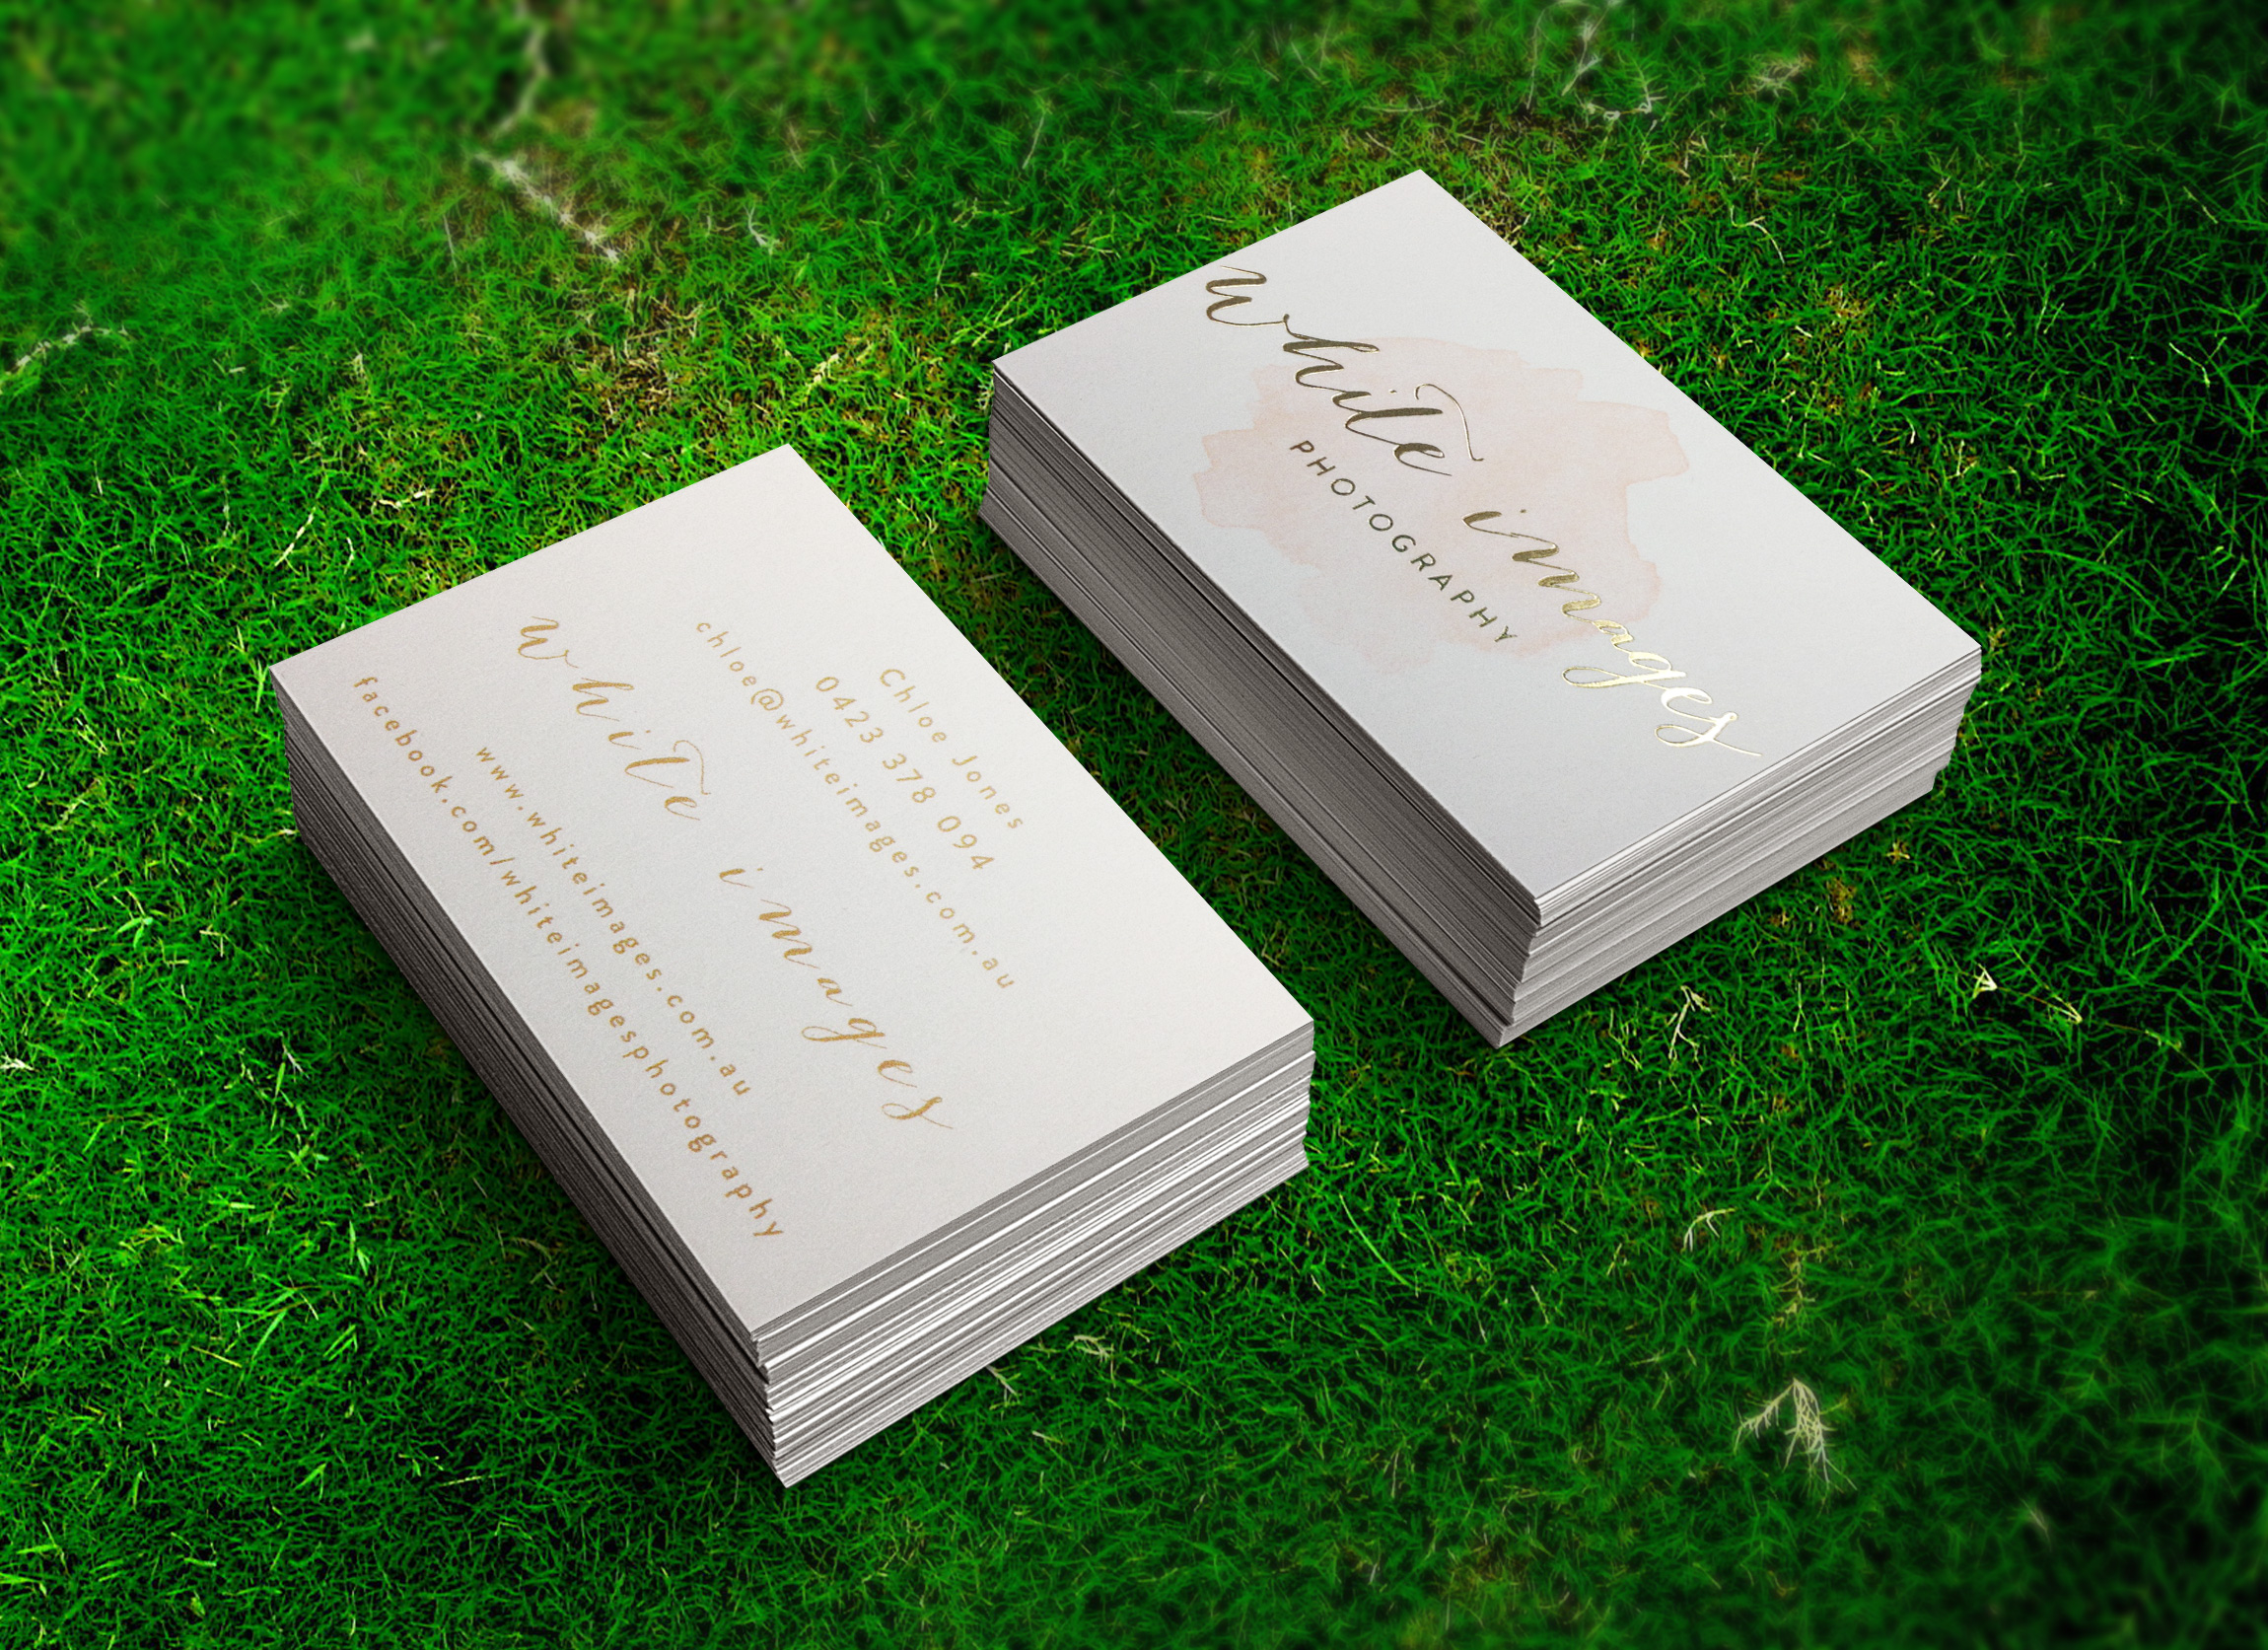 Ibs cards an incredibly elegant business card the gold foil on the front was complimented by a gold coloured ink on the back keeping the design simple and effective we love it we love it we love it colourmoves